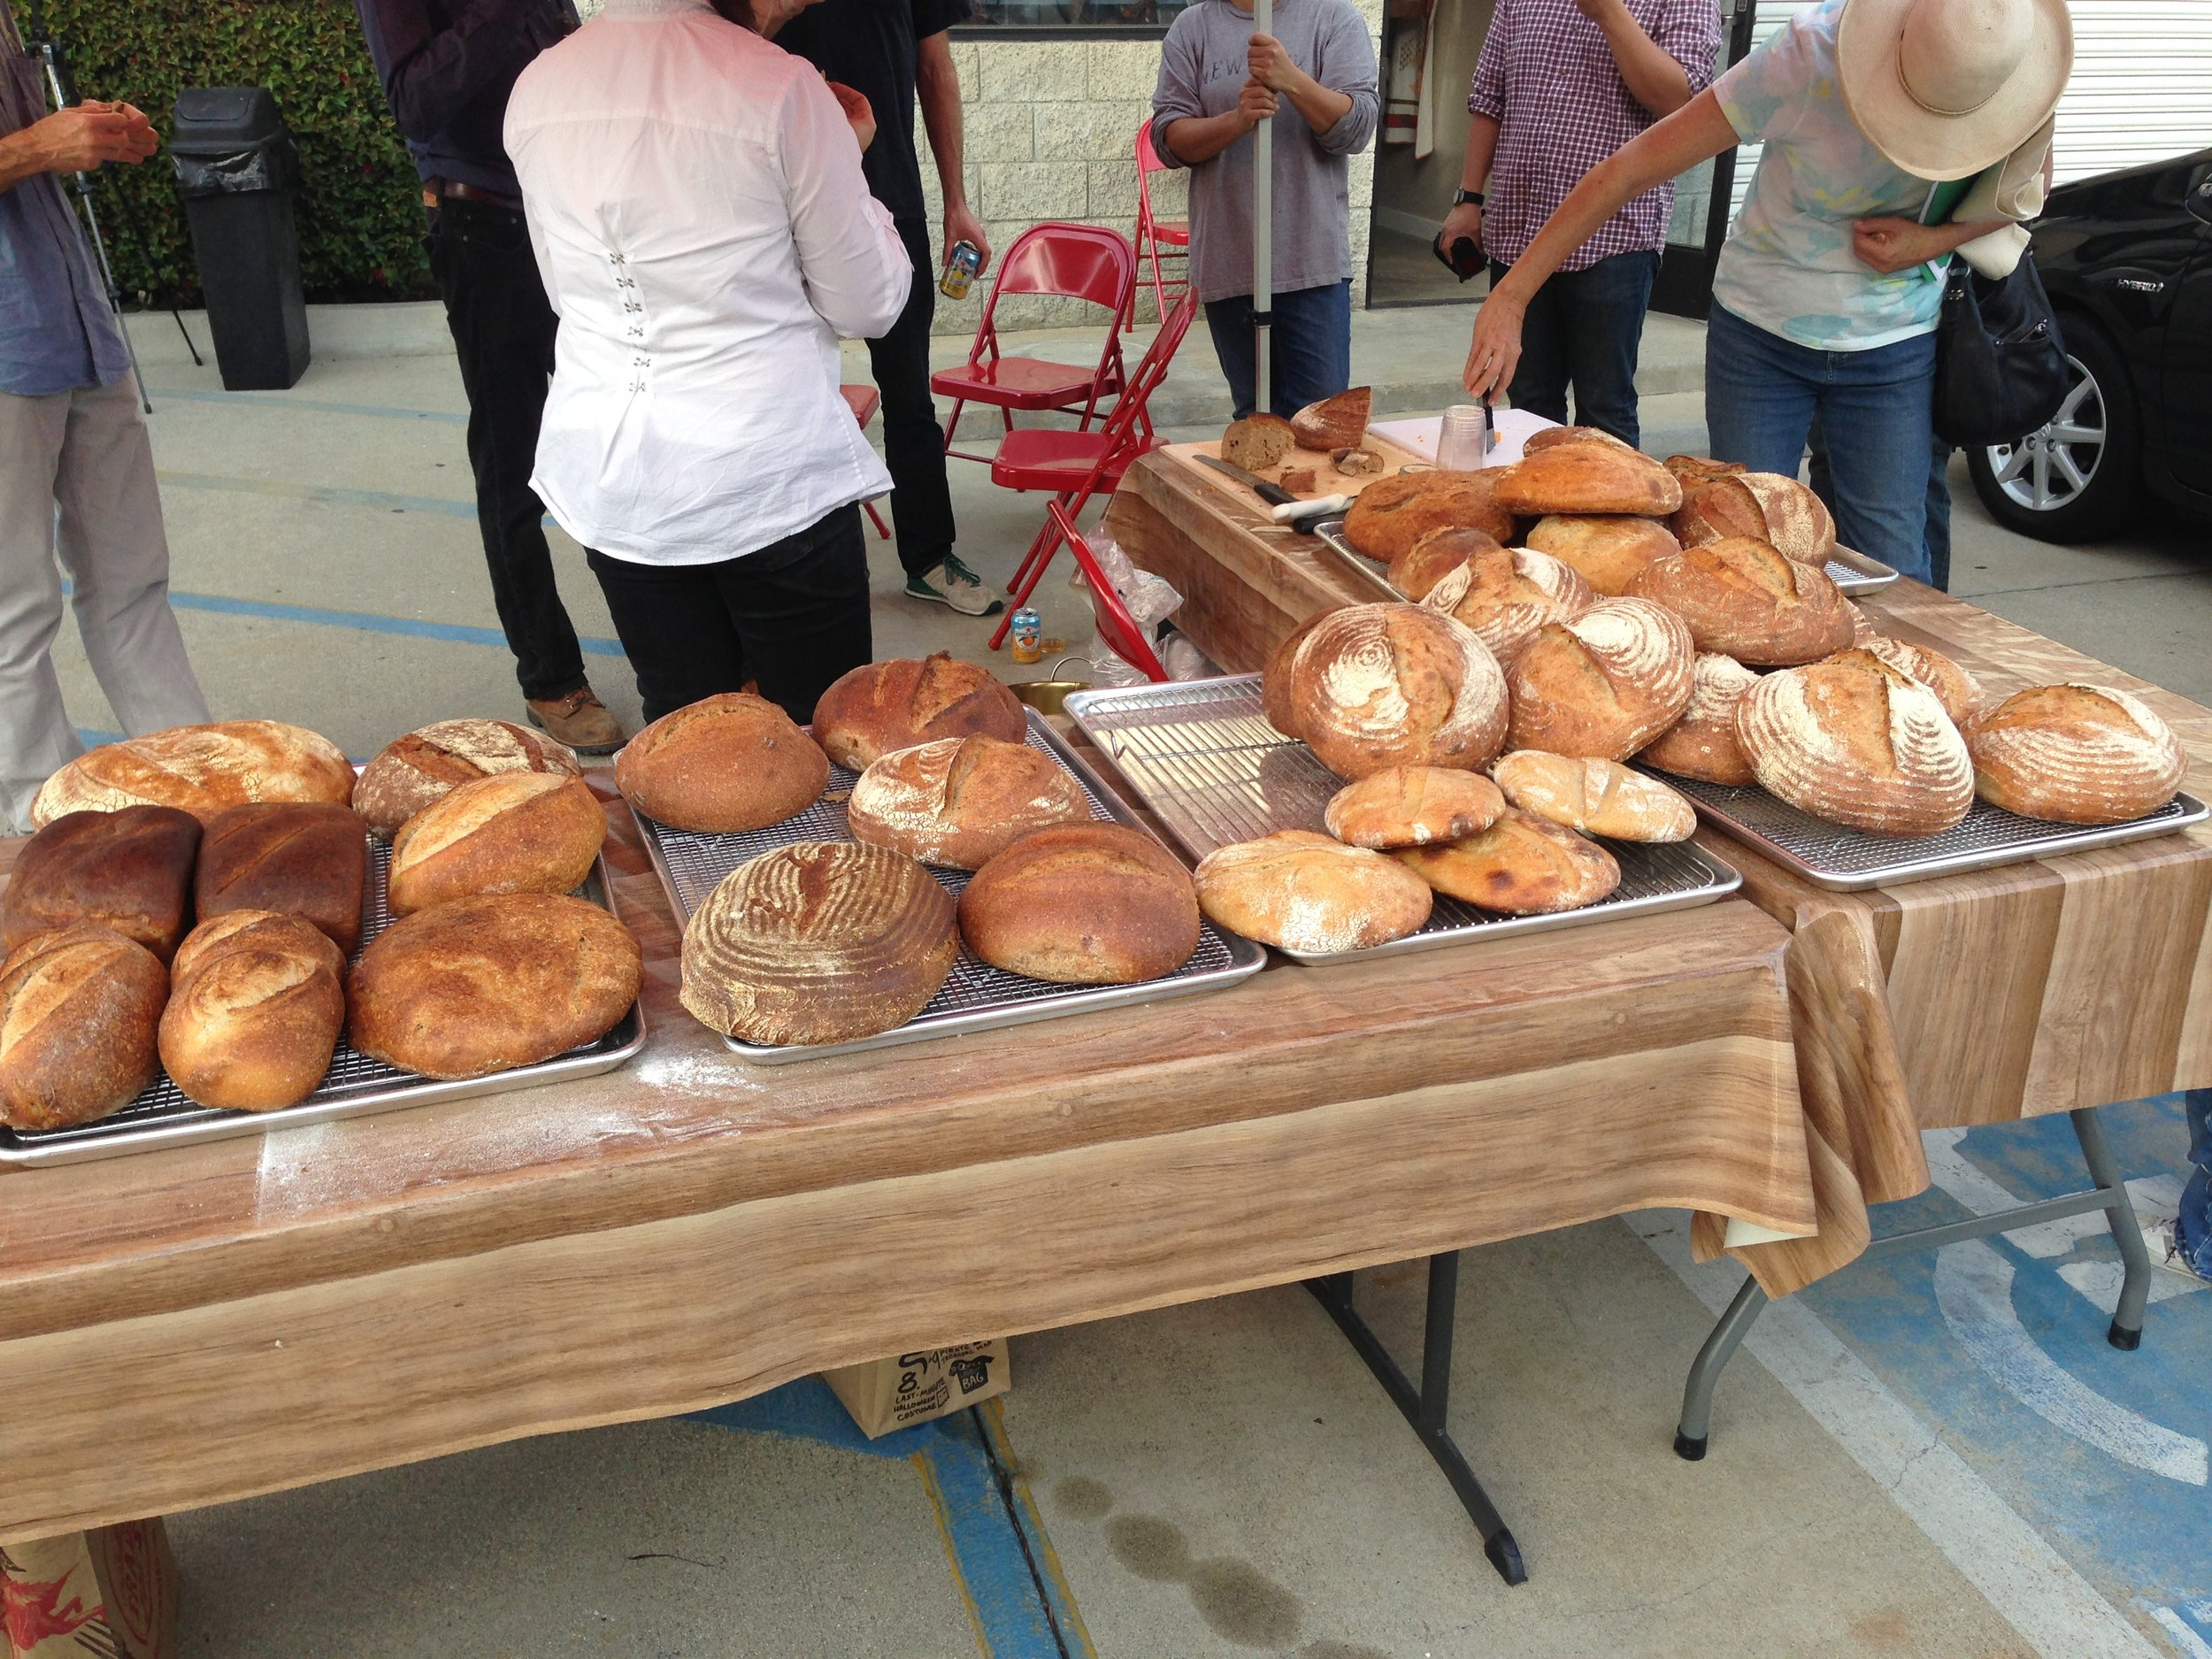 grist and toll community bake thanksgiving bake for soup kitchens.JPG